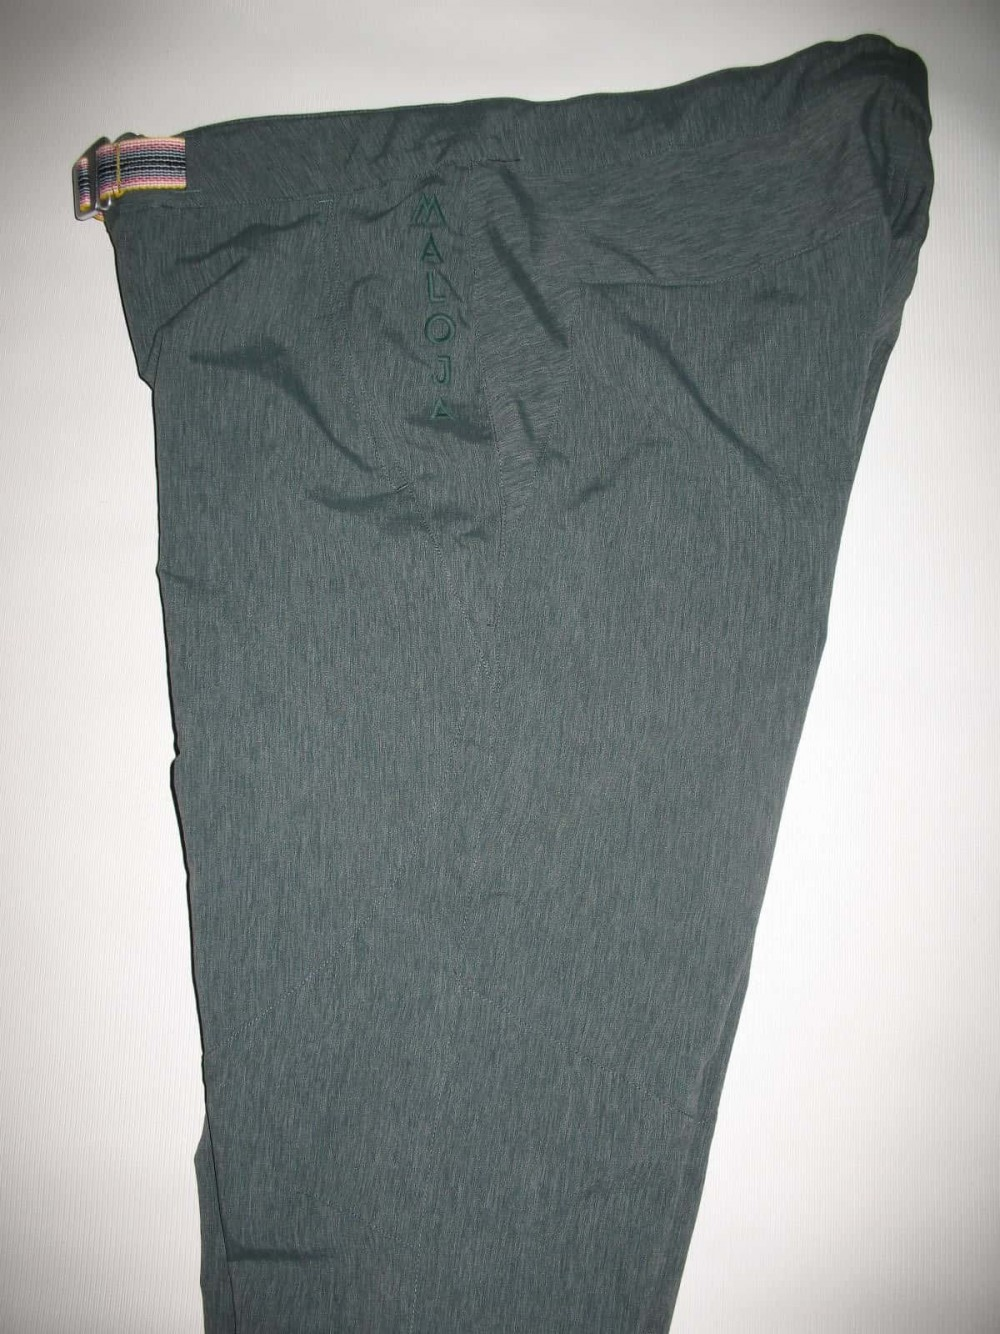 Штаны MALOJA CuroM. outdoor pants (размер M) - 8